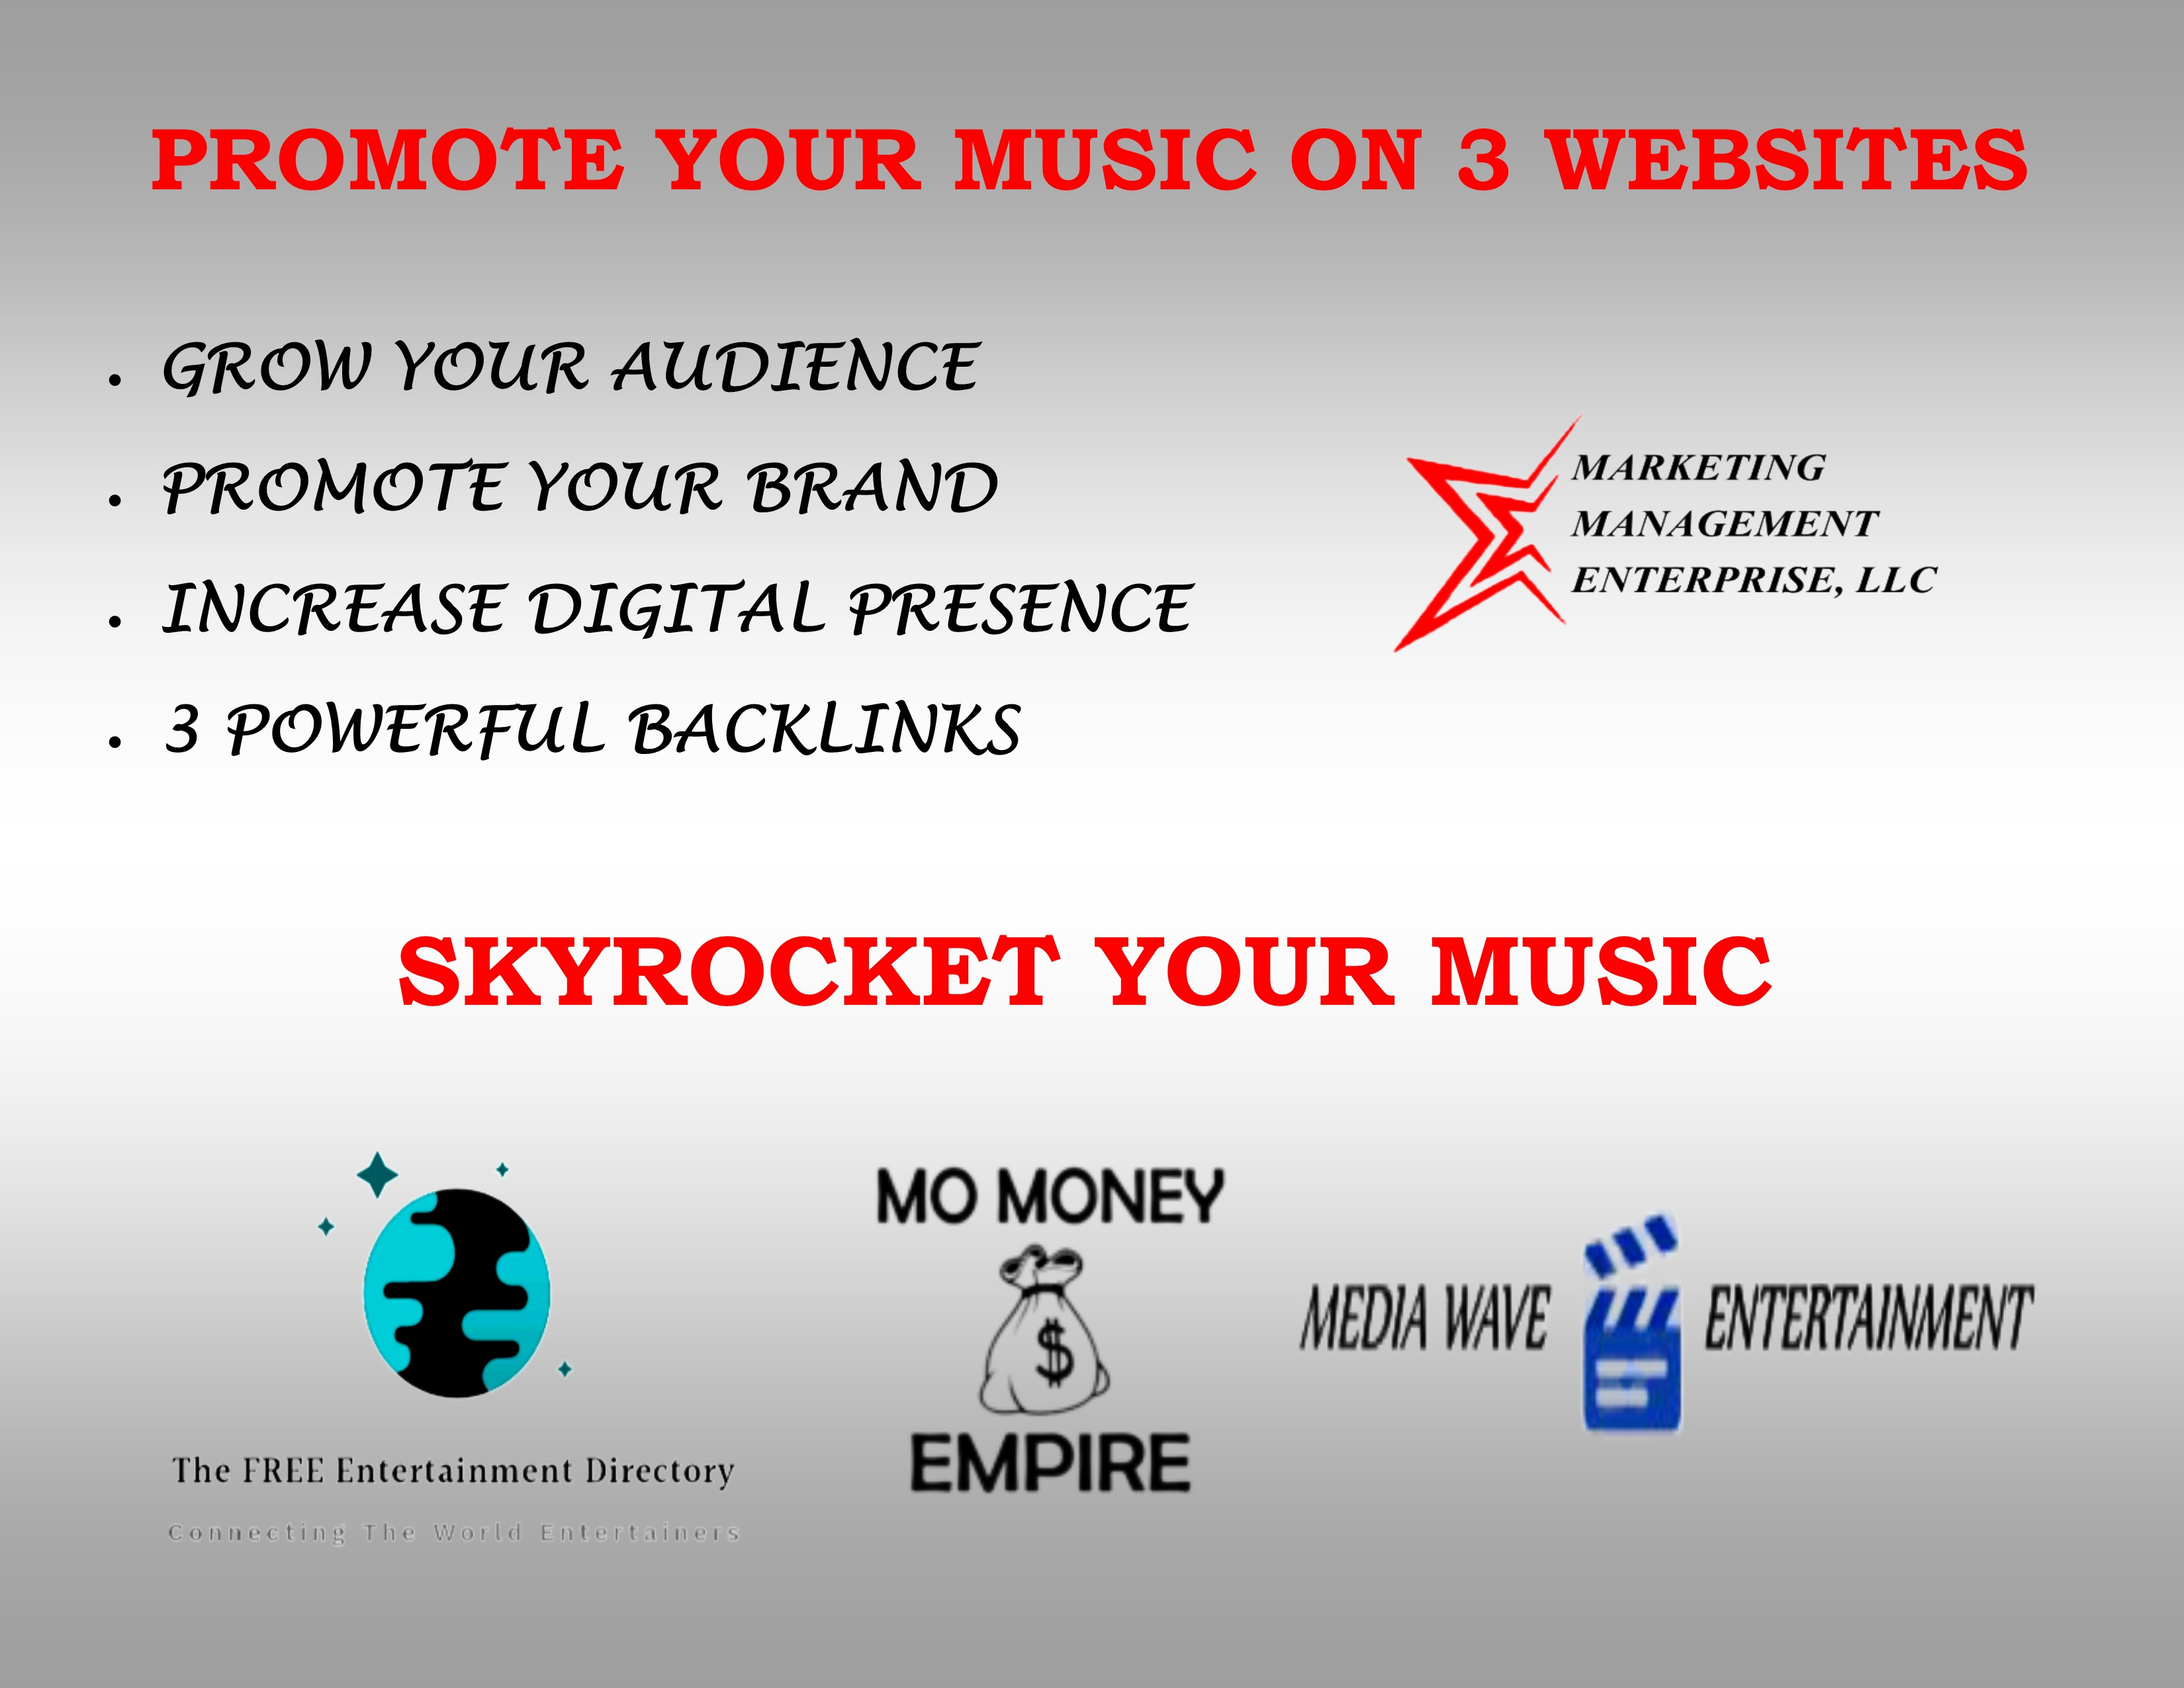 3 Entertainment Websites to PROMOTE YOUR MUSIC